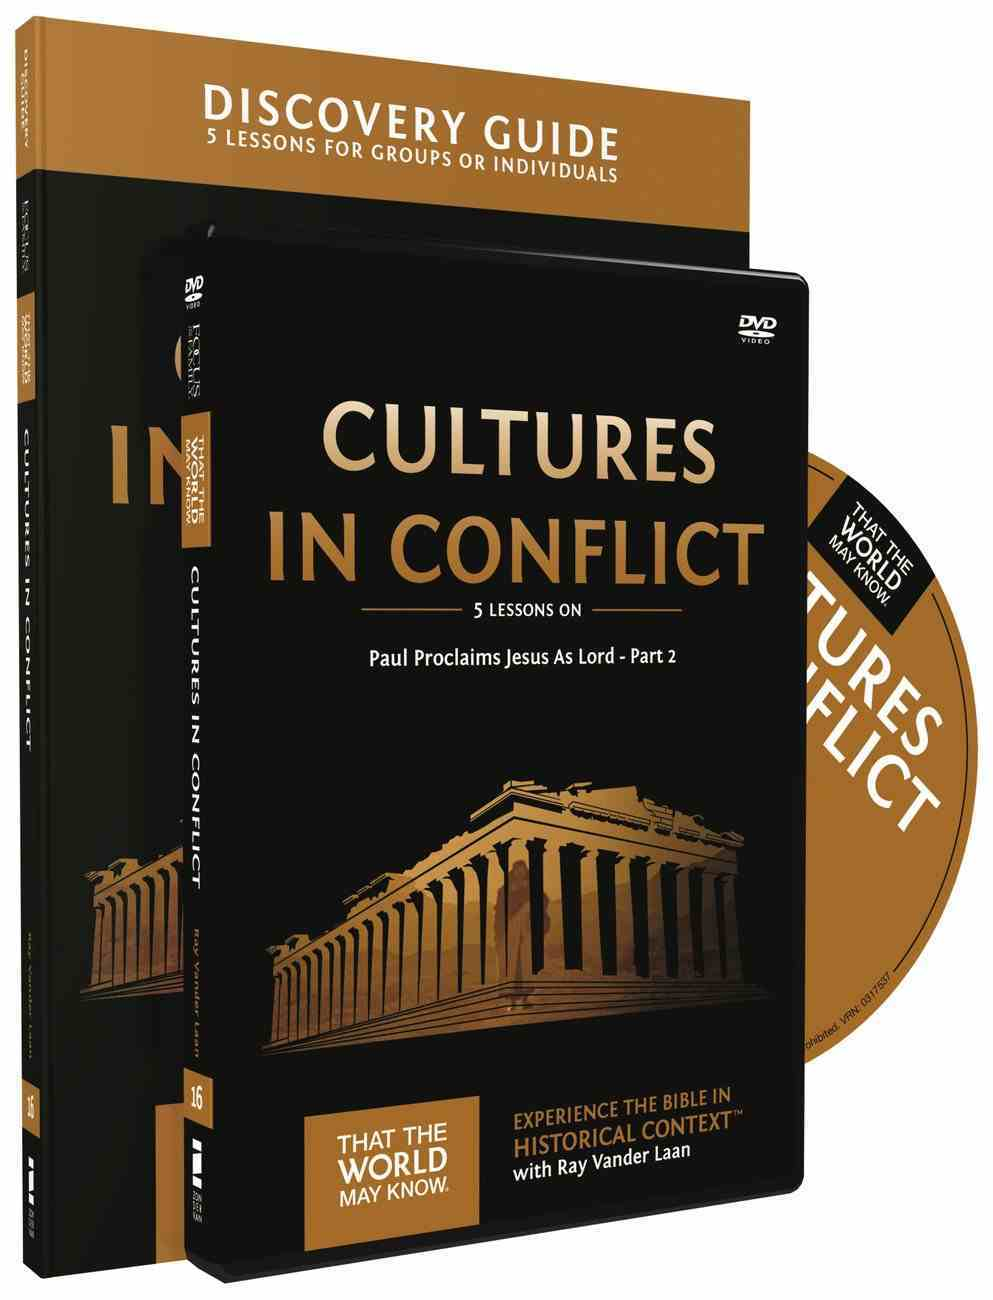 Cultures in Conflict : Paul Proclaims Jesus as Lord Part #02 (Discovery Guide With DVD) (That The World May Know Series) Paperback